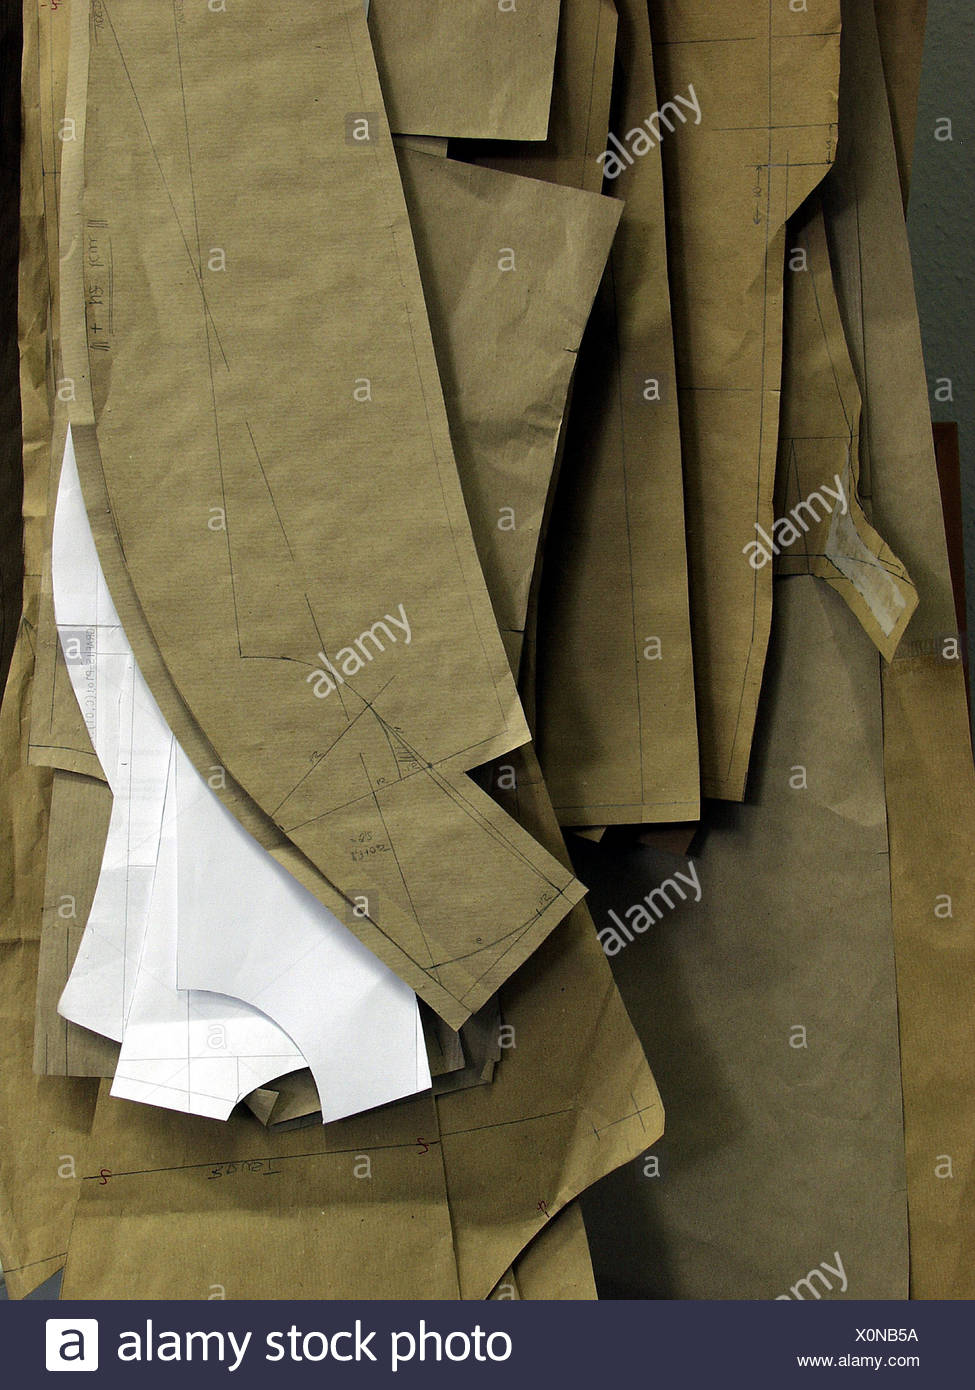 Tailoring, editing sample, detail, needlework, dimension tailoring, slices, samples, templates, tailor, sew, sewing, manual labour, precision work, to bespoke tailors, fashion, fashion design, creativity, Still life, product photography - Stock Image